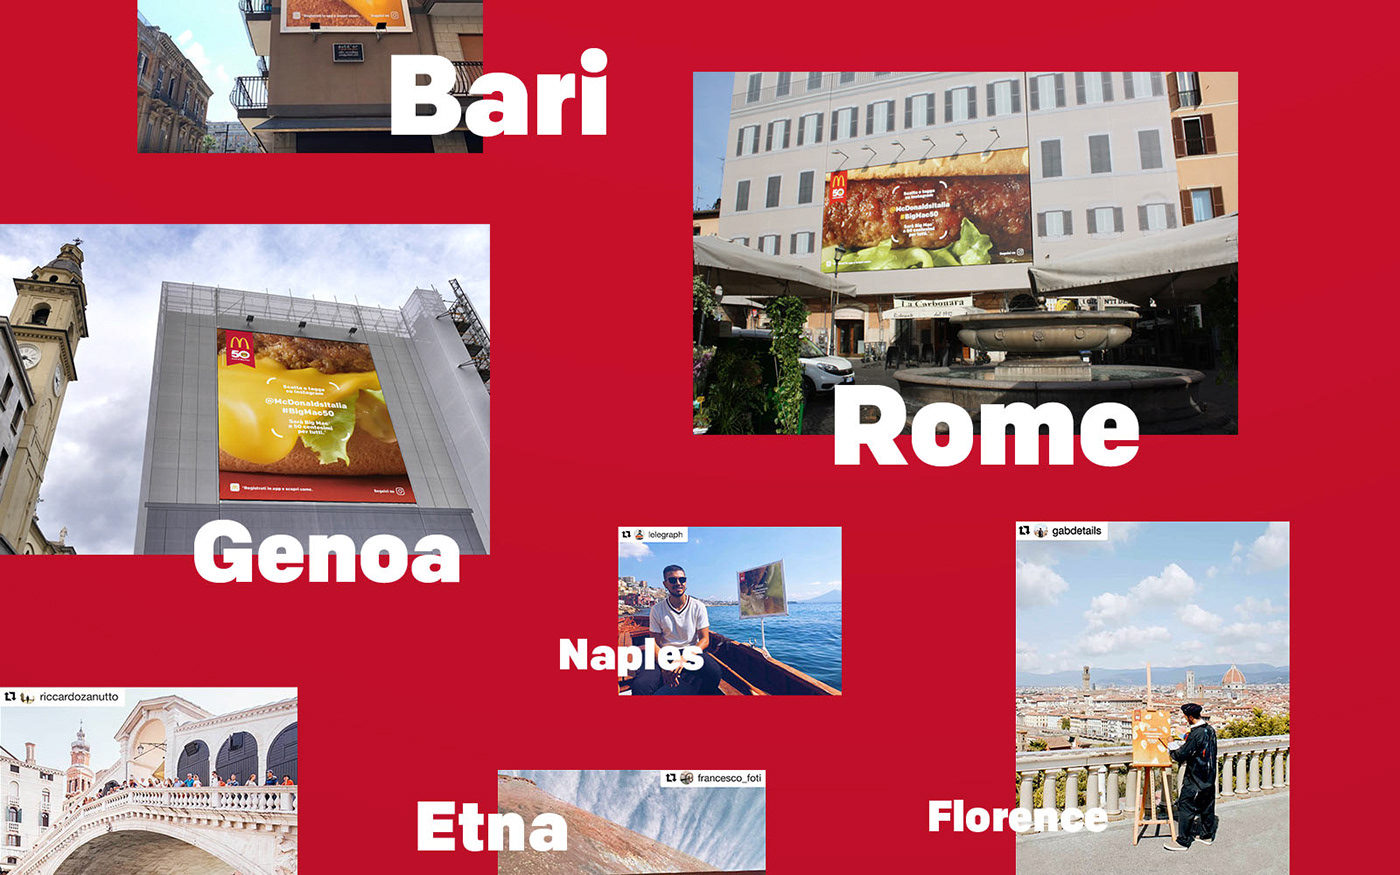 McDonalds bigmac integrated quest anniversary Advertising  Outdoor Italy